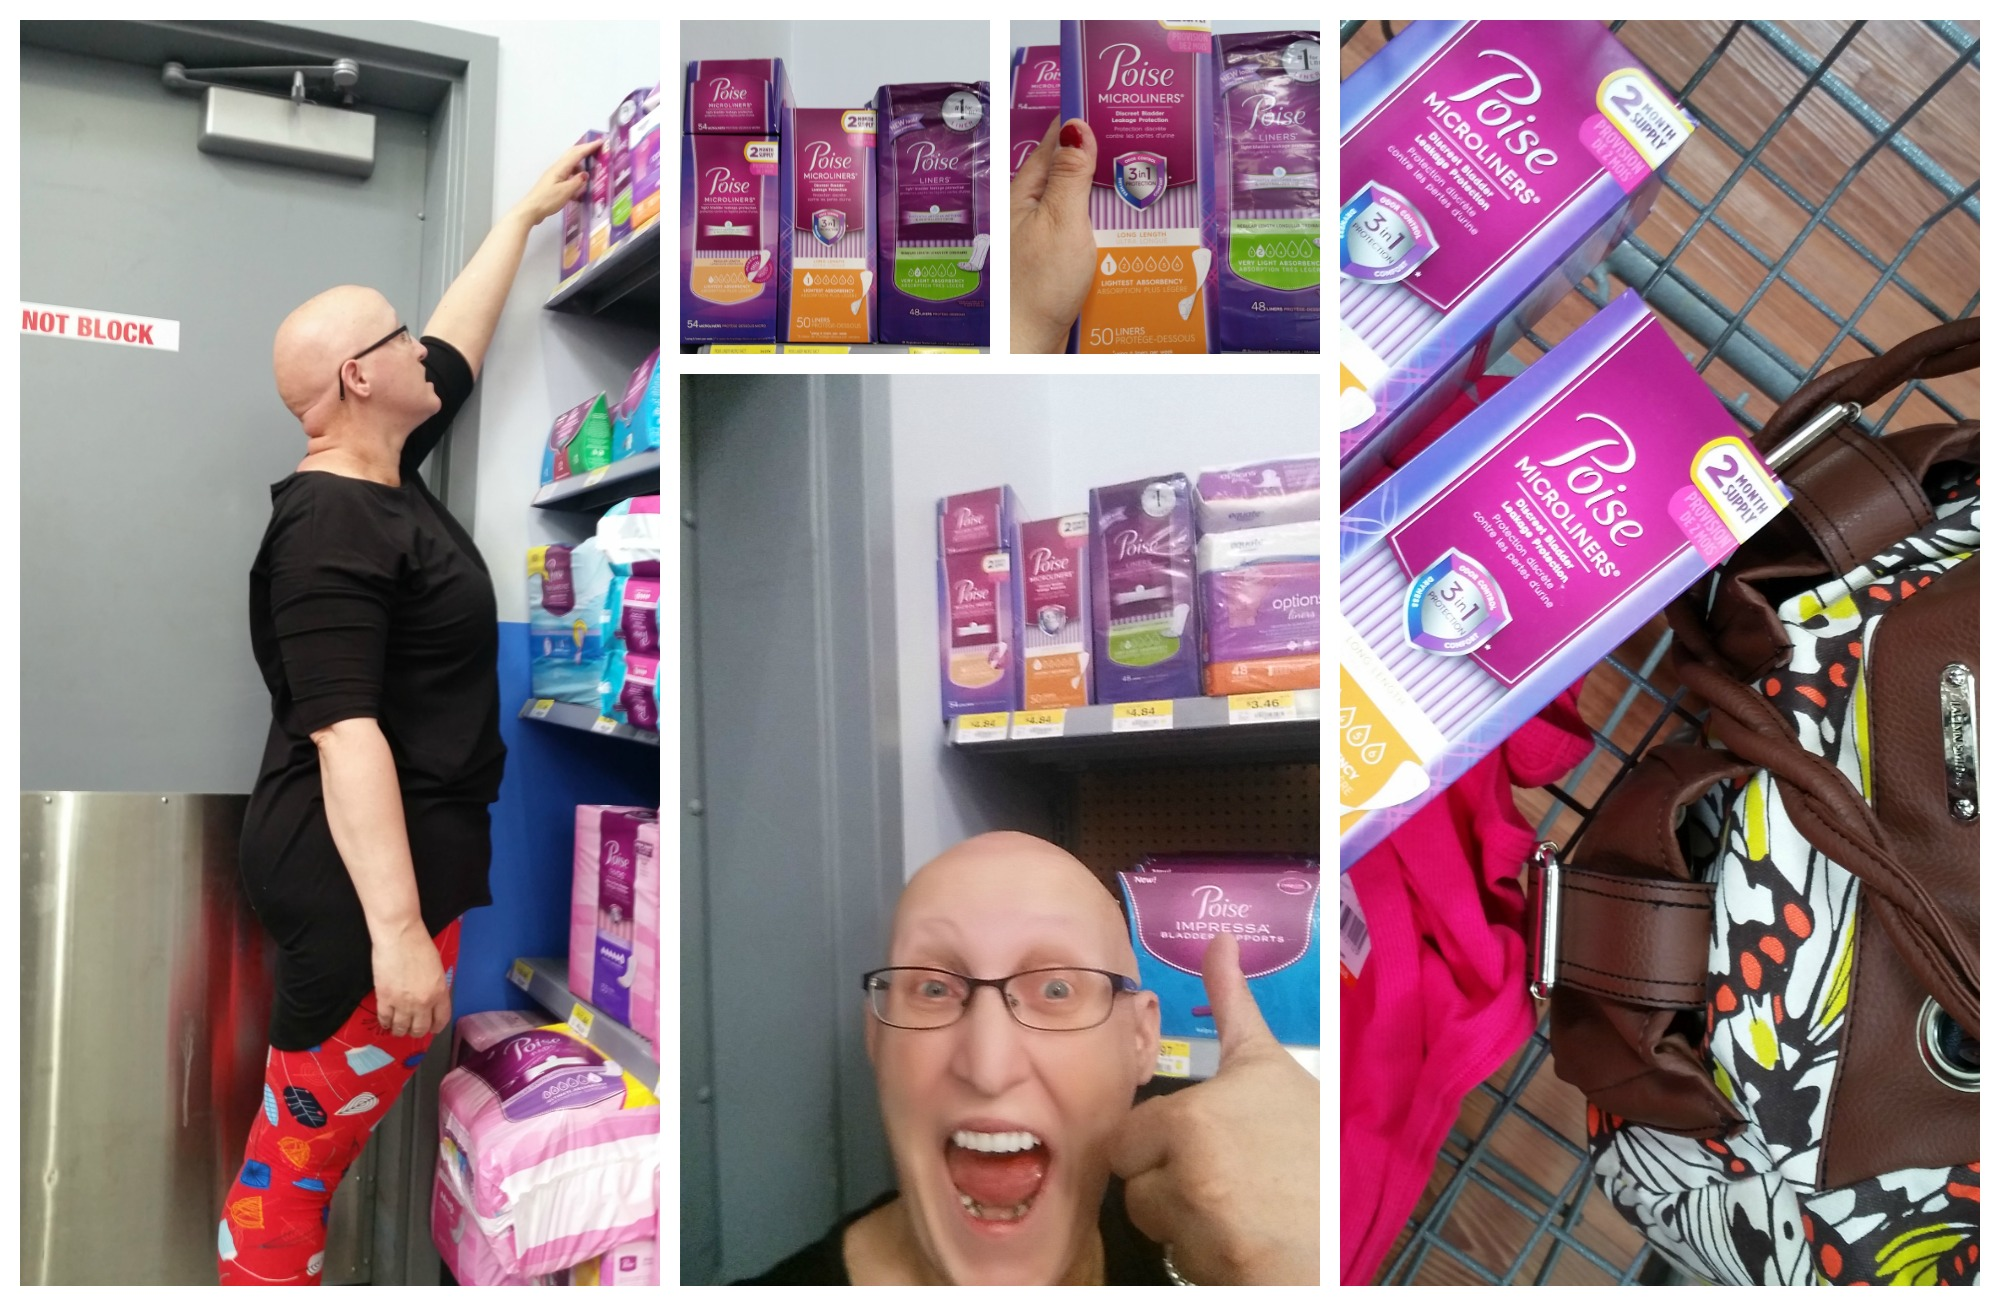 Poise Microliners at Walmart